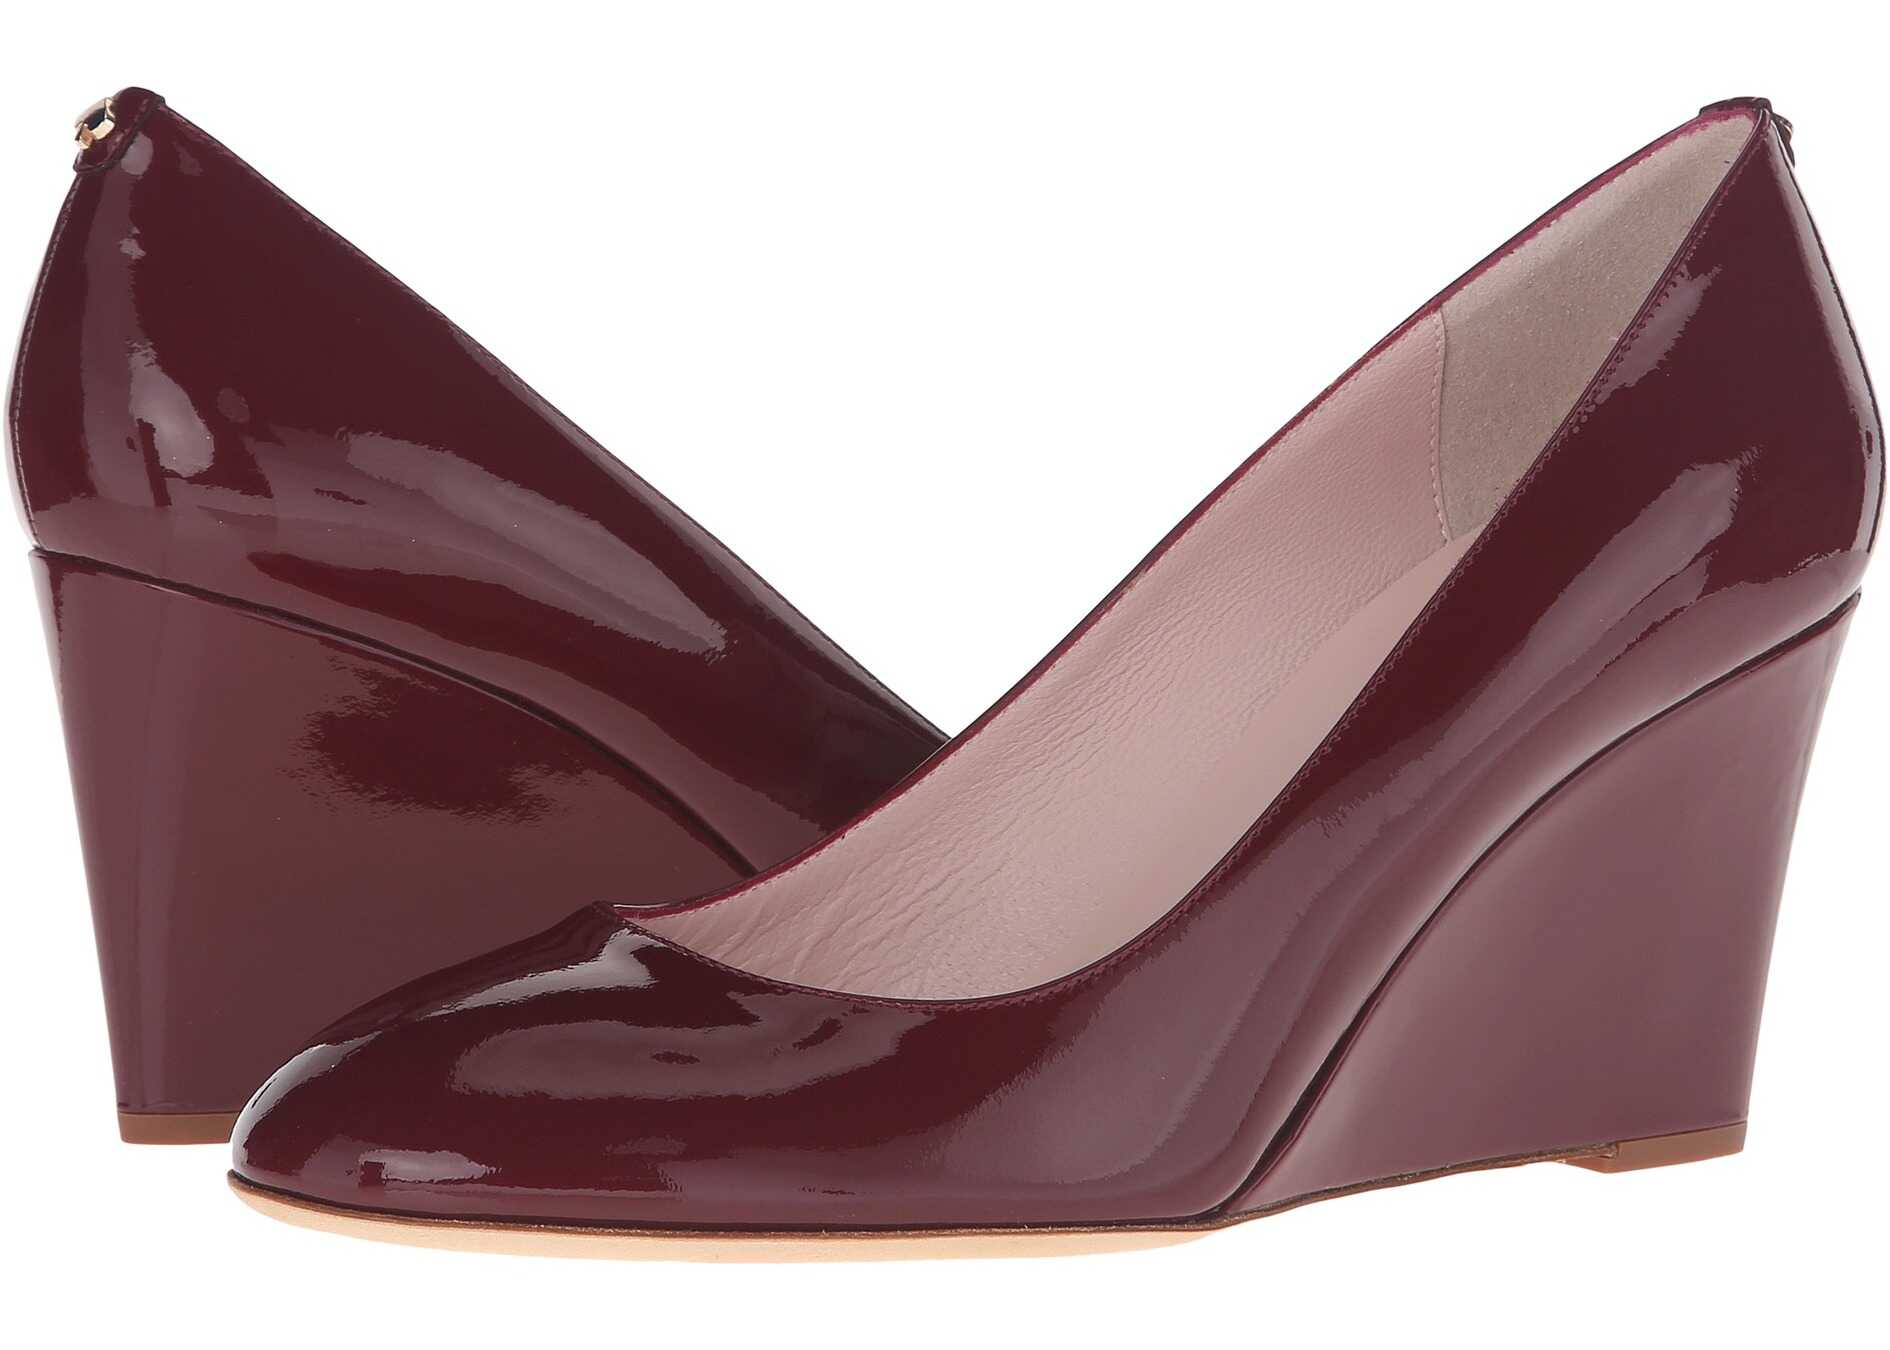 Kate Spade New York Amory Red Chestnut Patent